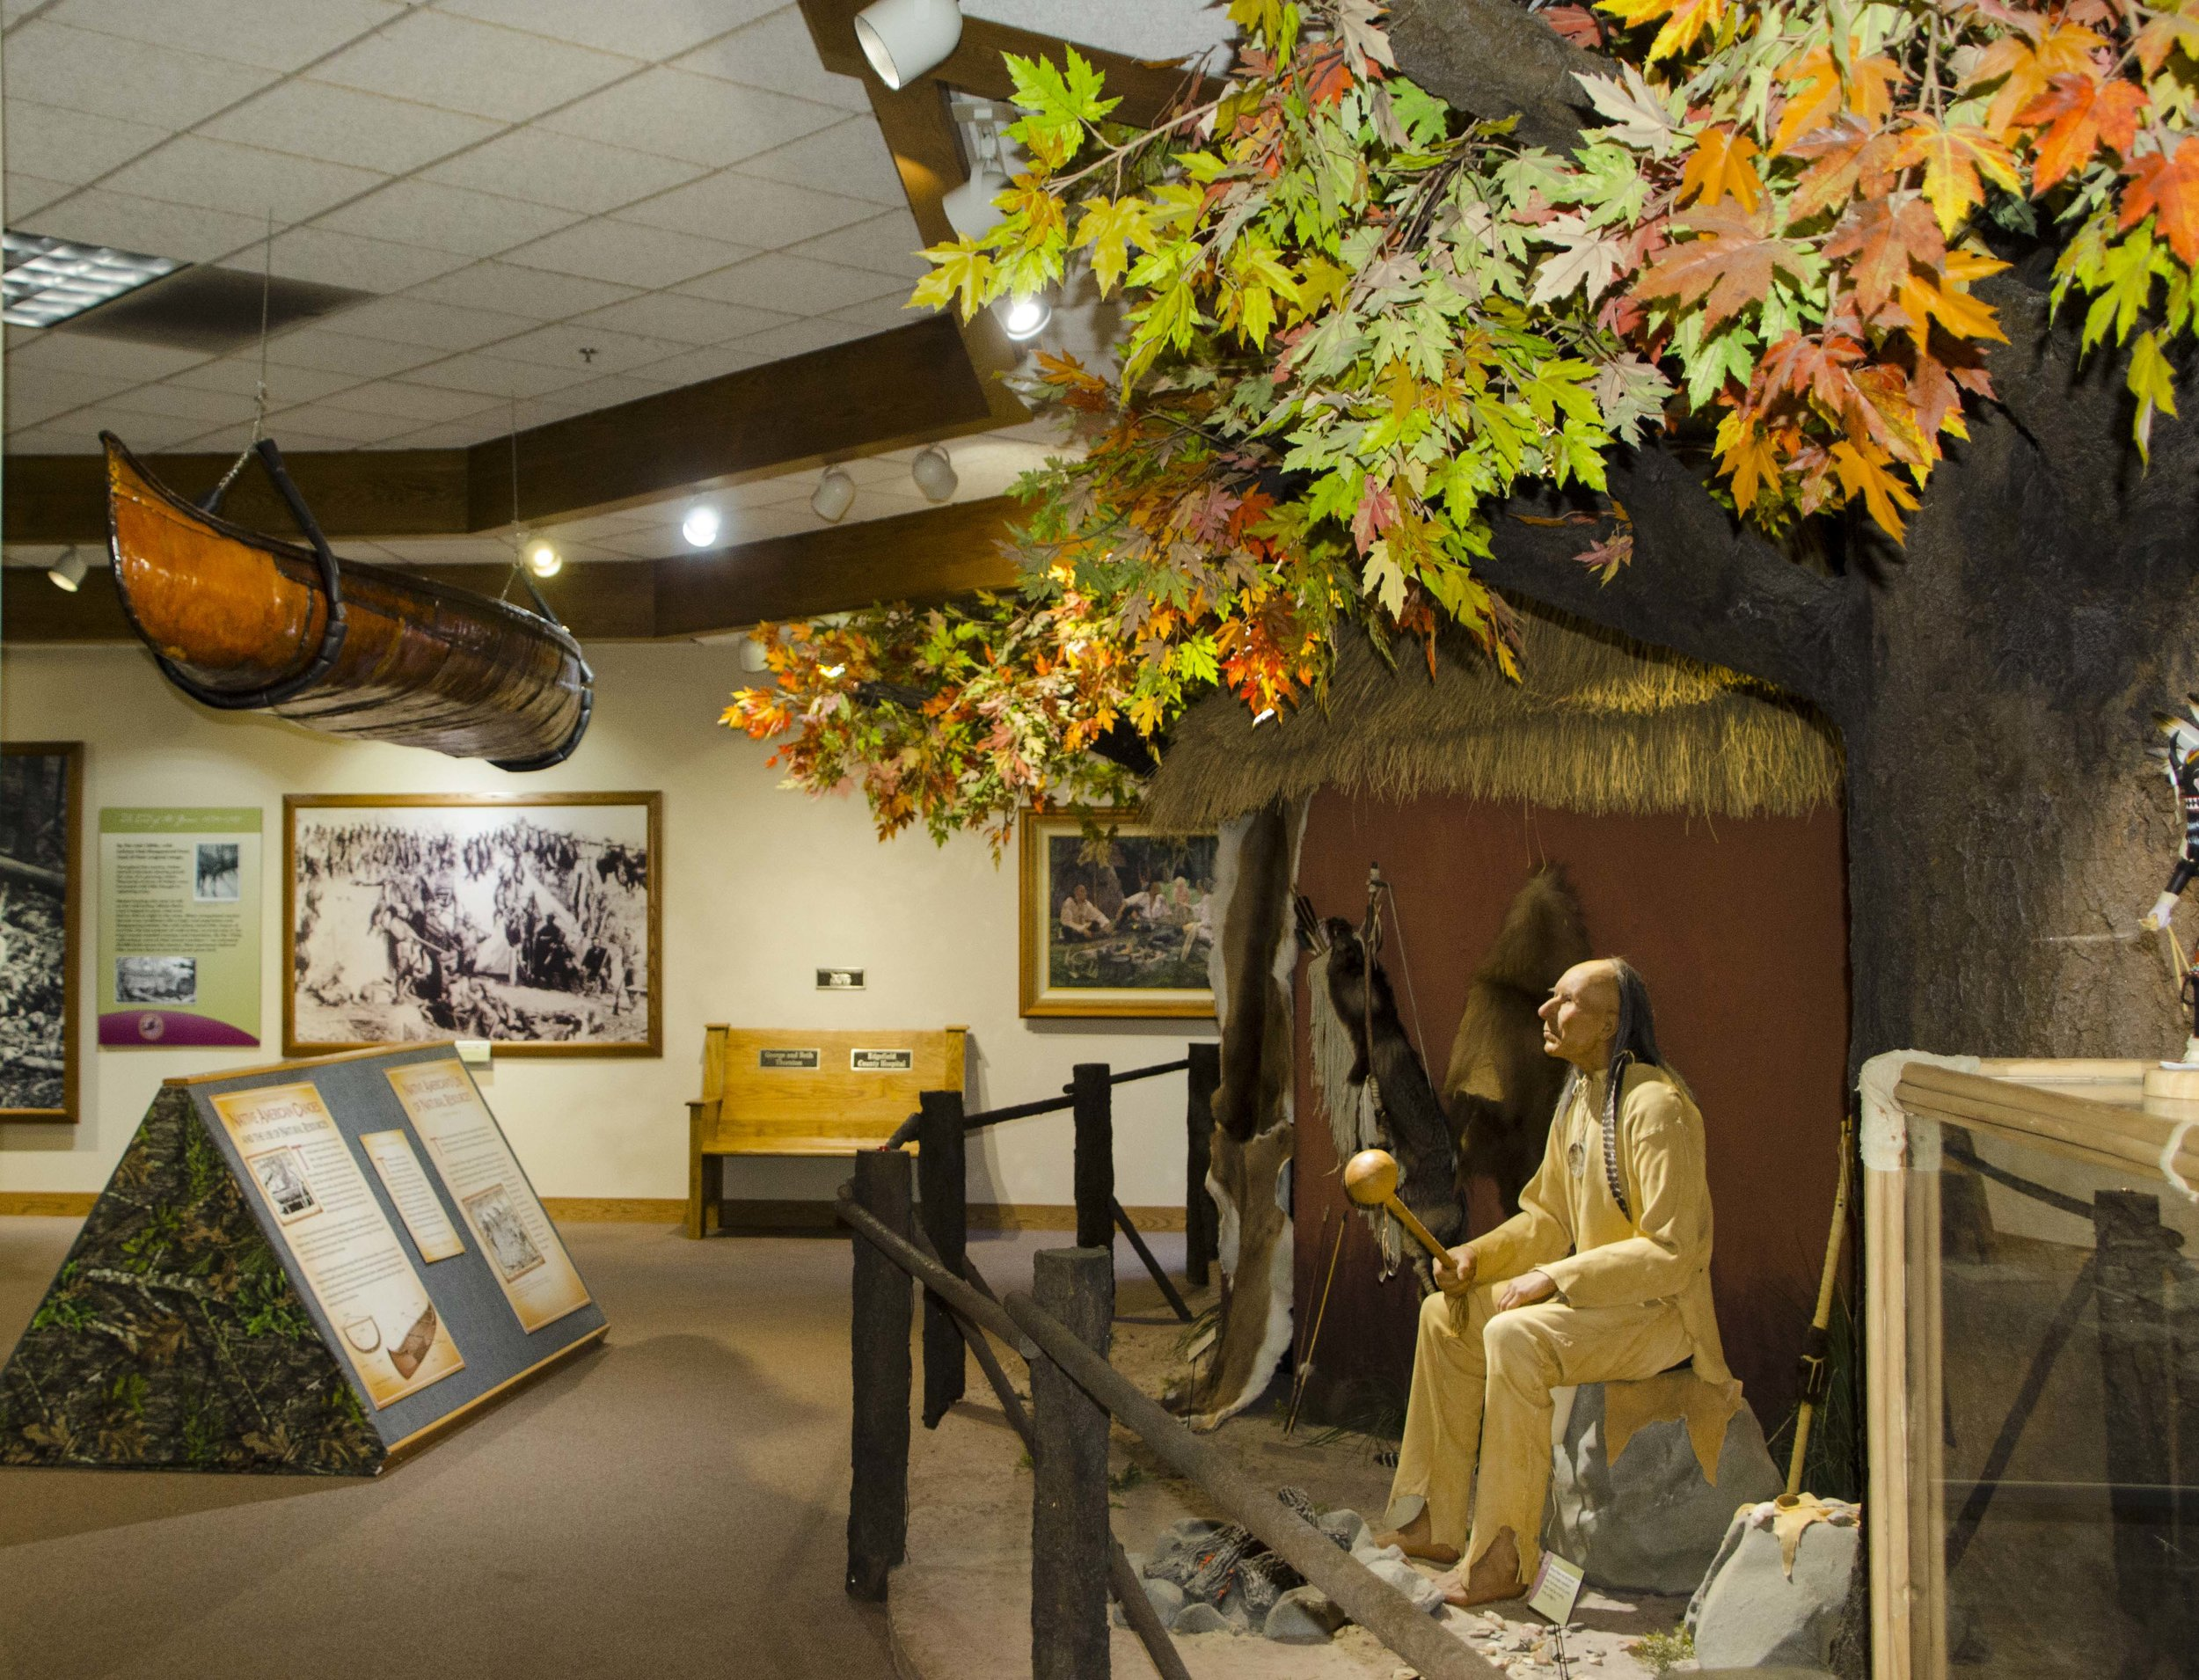 The exhibit is roughly chronological, beginning with the importance of the wild turkey as a game animal to Native Americans prior to European colonization of the New world.